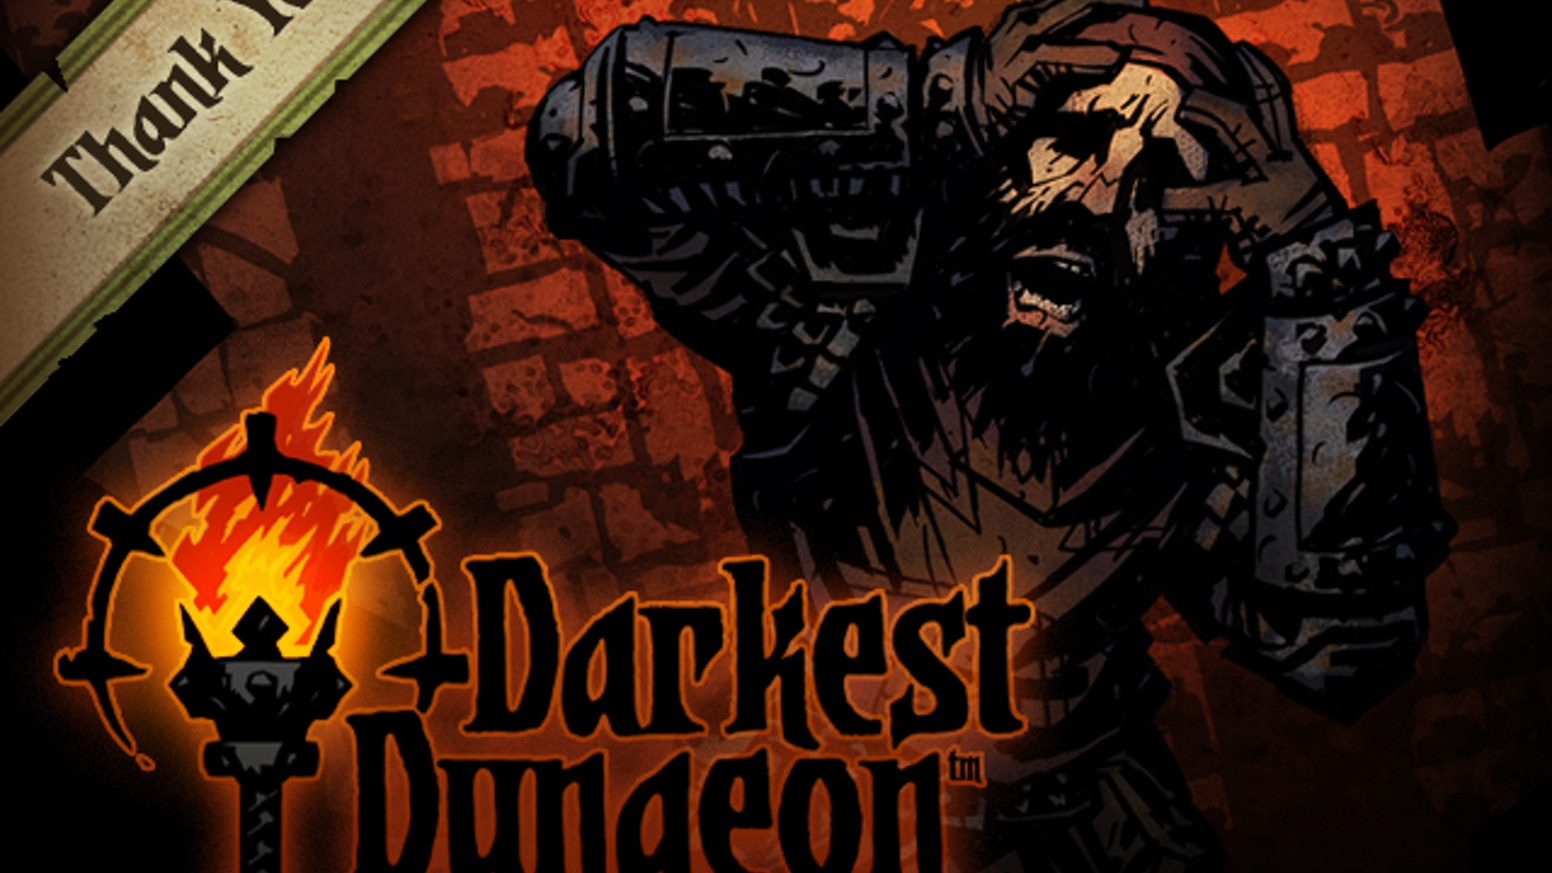 Darkest Dungeon is a challenging gothic roguelike RPG about the psychological stresses of adventuring. Descend at your peril!